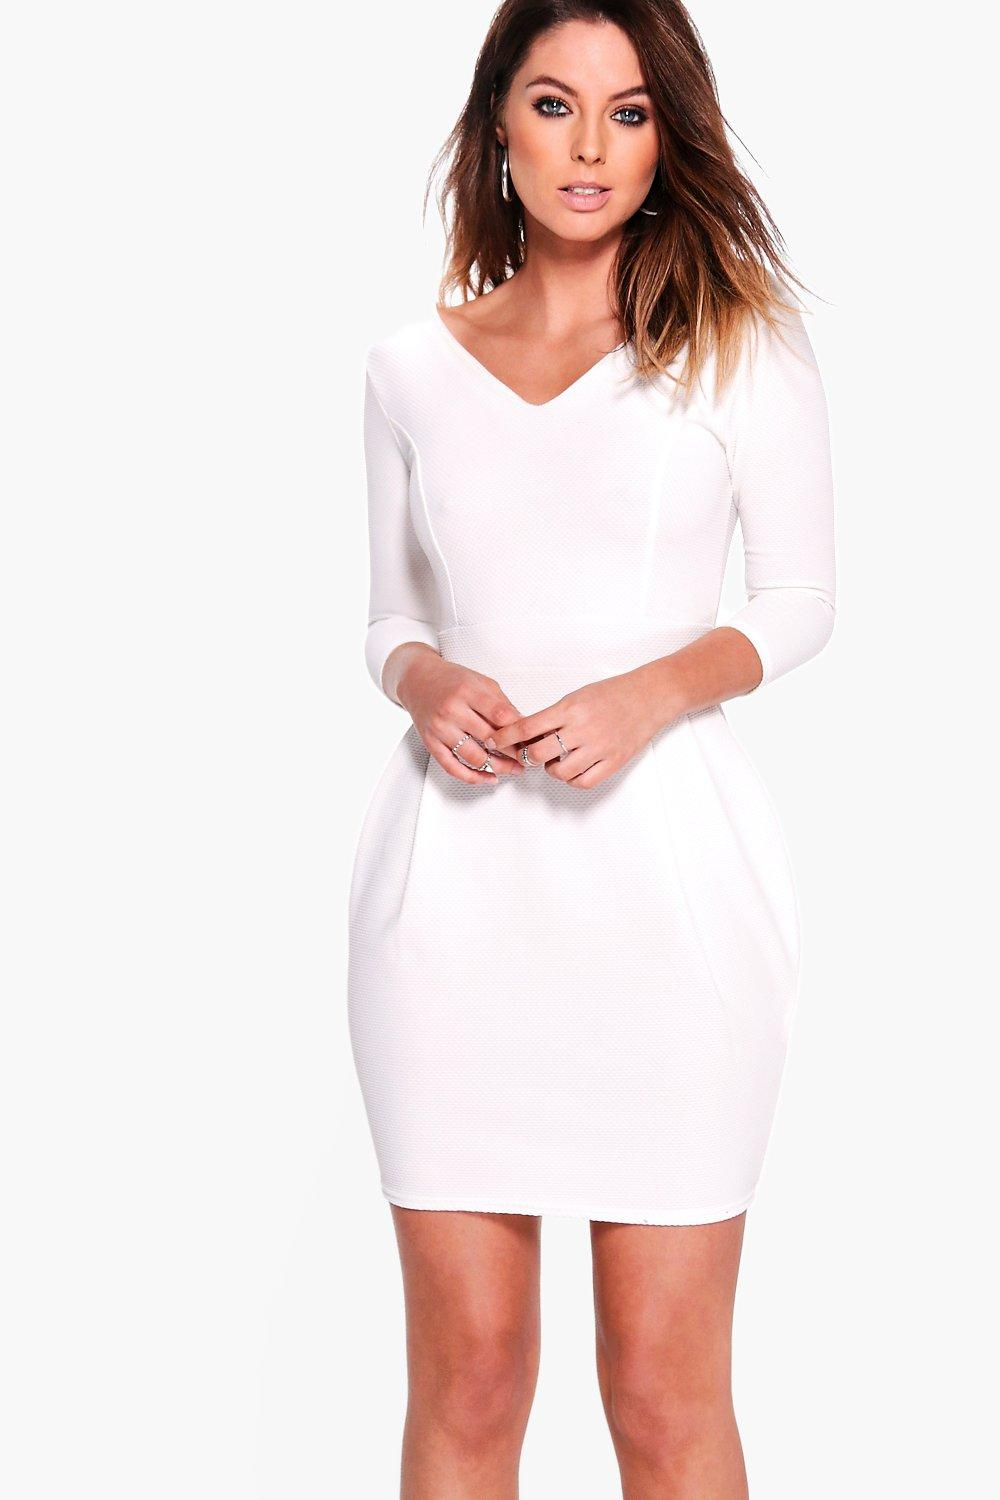 Textured Fabric V Neck Tulip Dress  ivory